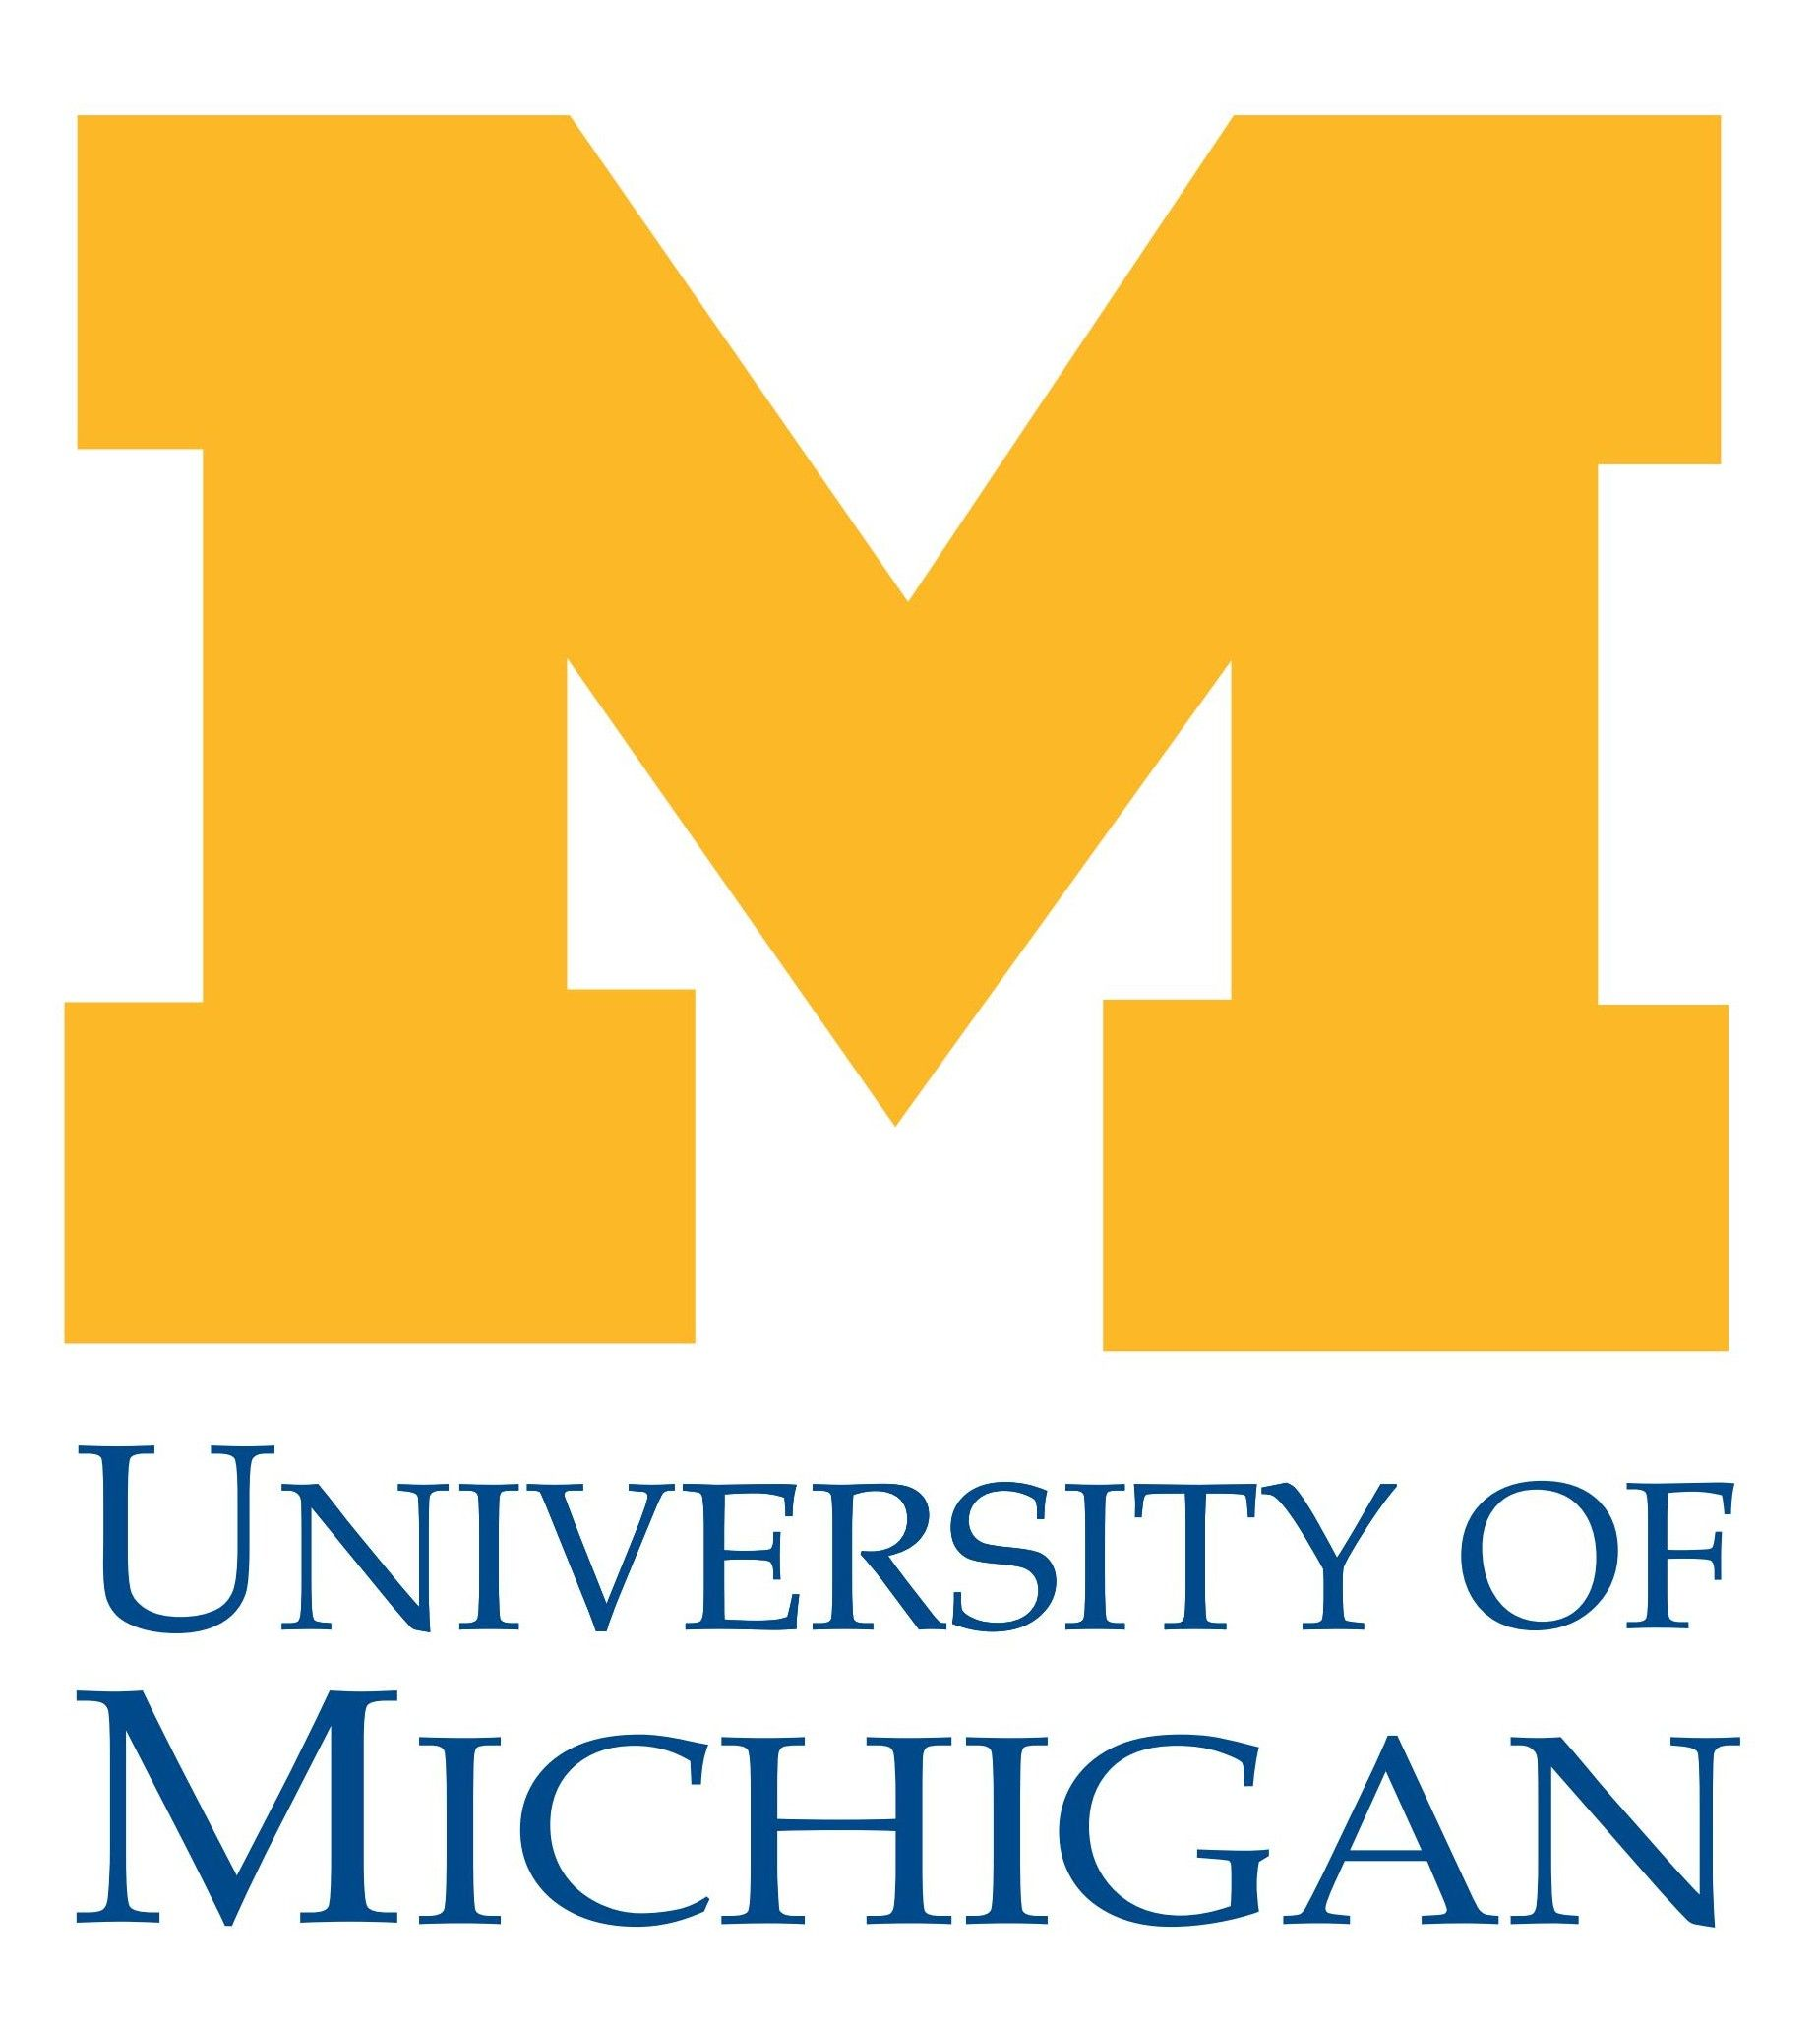 Michigan University Mr. Hadmissions essay